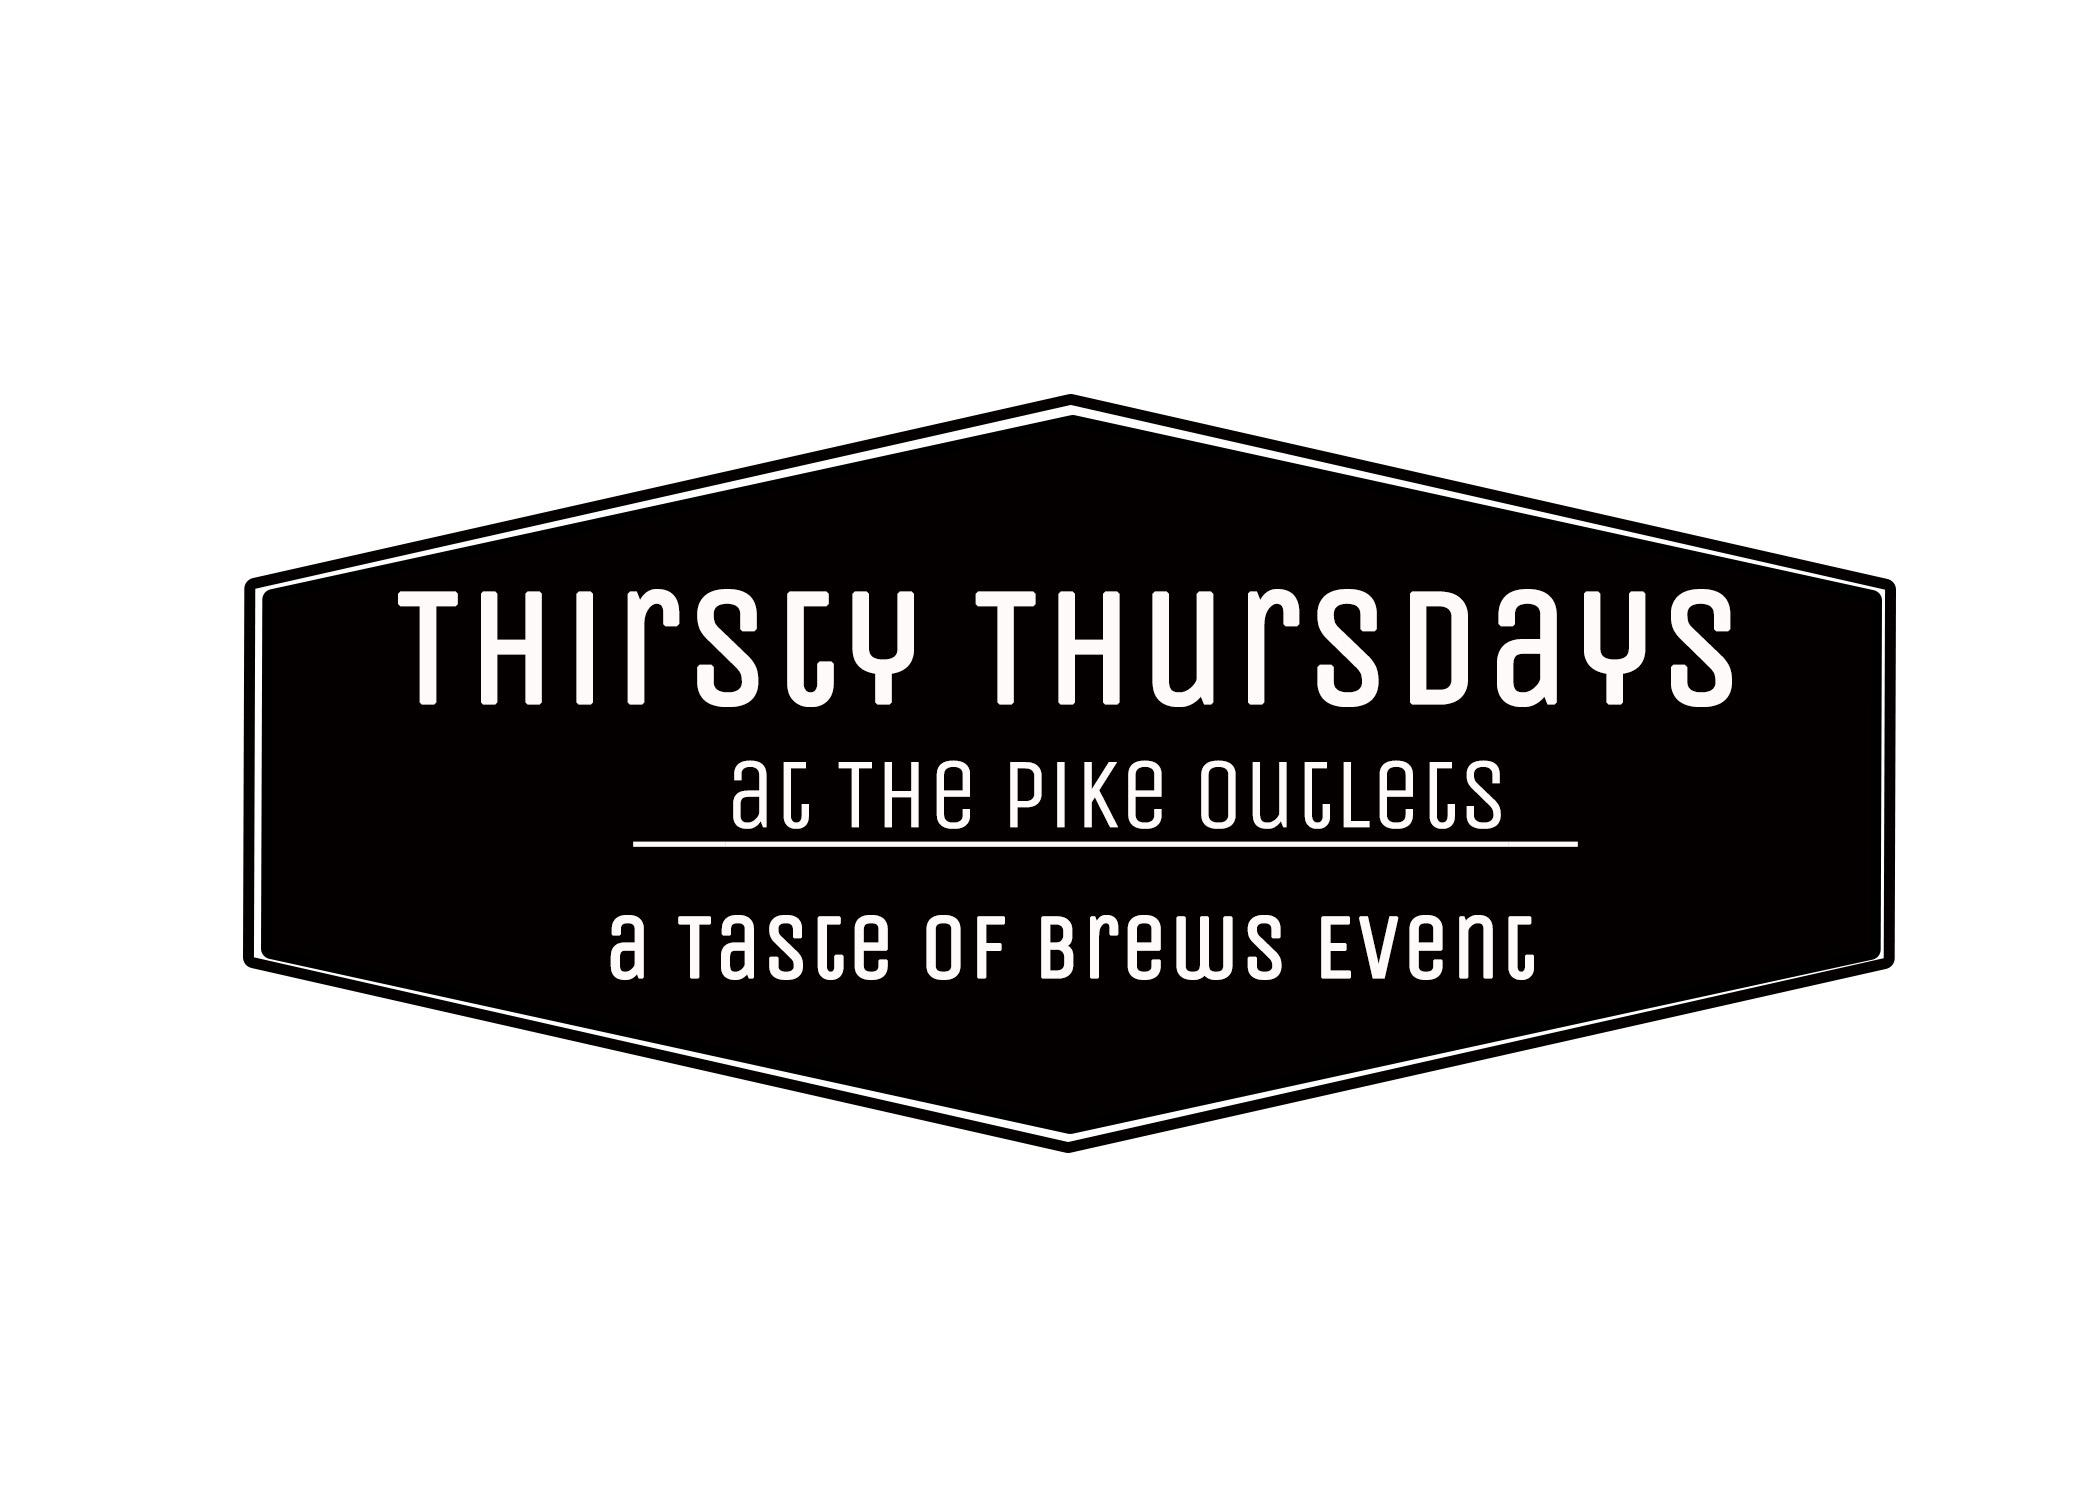 Thirsty Thursdays at The Pike Outlets on 4-13